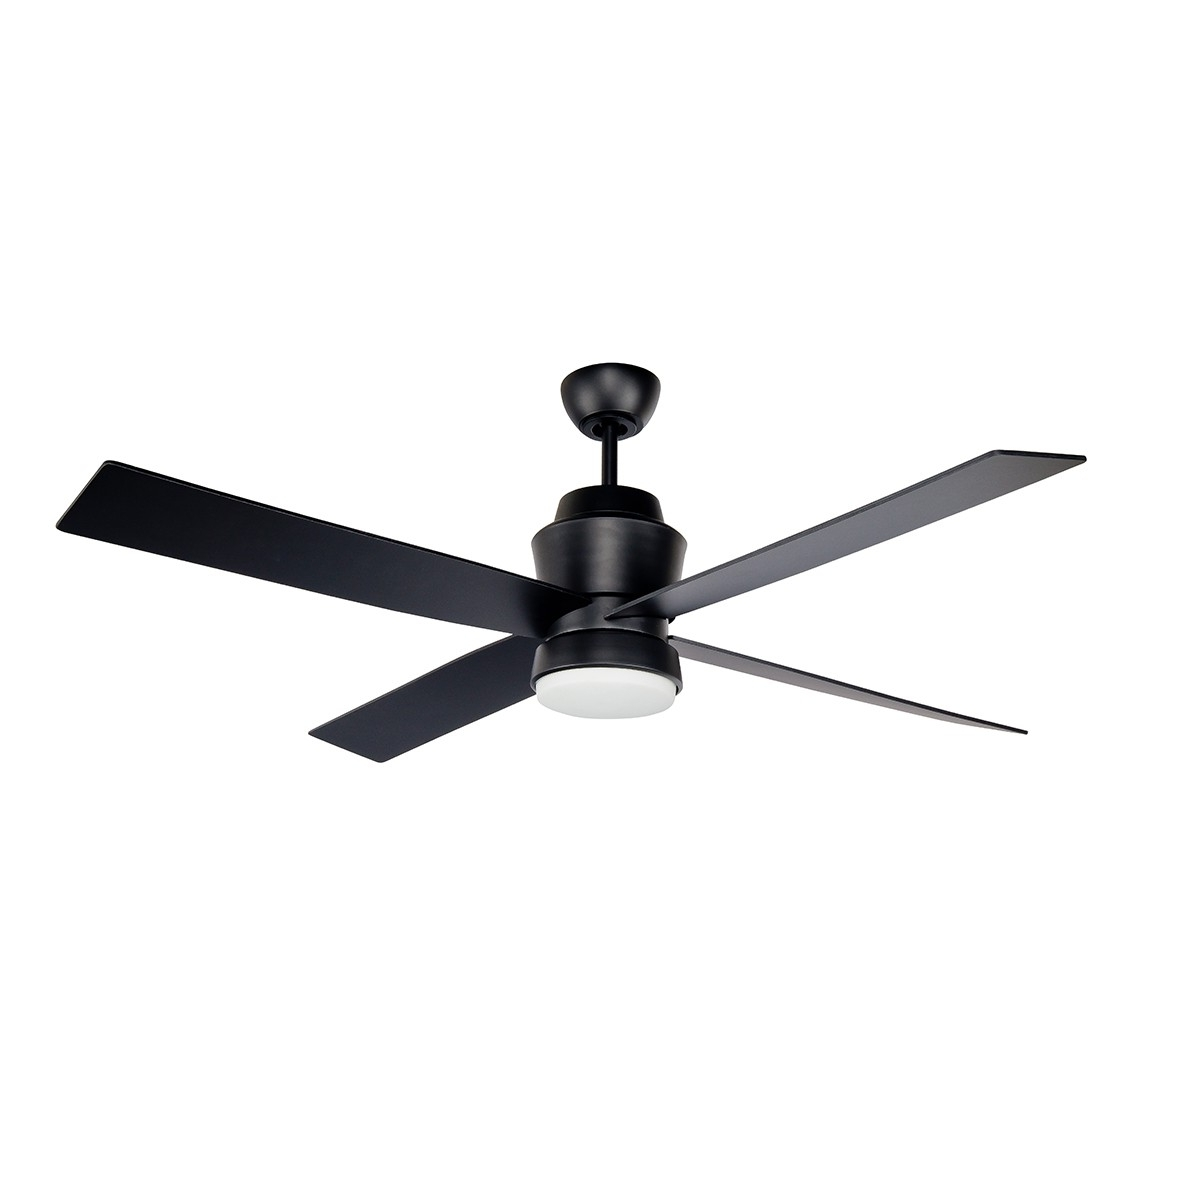 Ceiling Fans : Prologue Outdoor Ceiling Fan Exterior Fans Stori Pertaining To 2018 Black Outdoor Ceiling Fans With Light (Gallery 18 of 20)